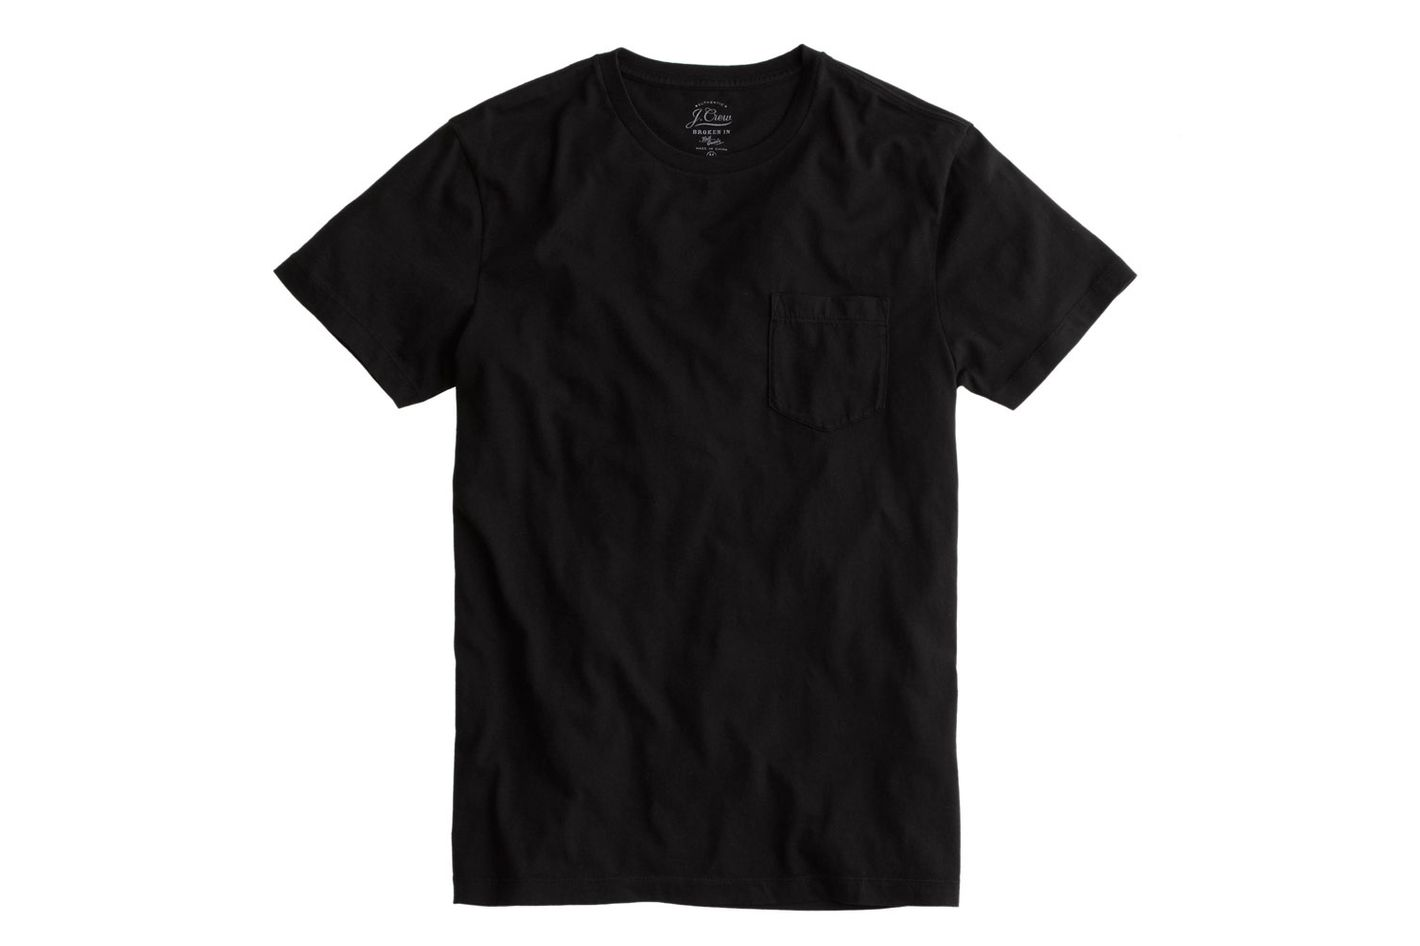 Black t shirt v shape - Share